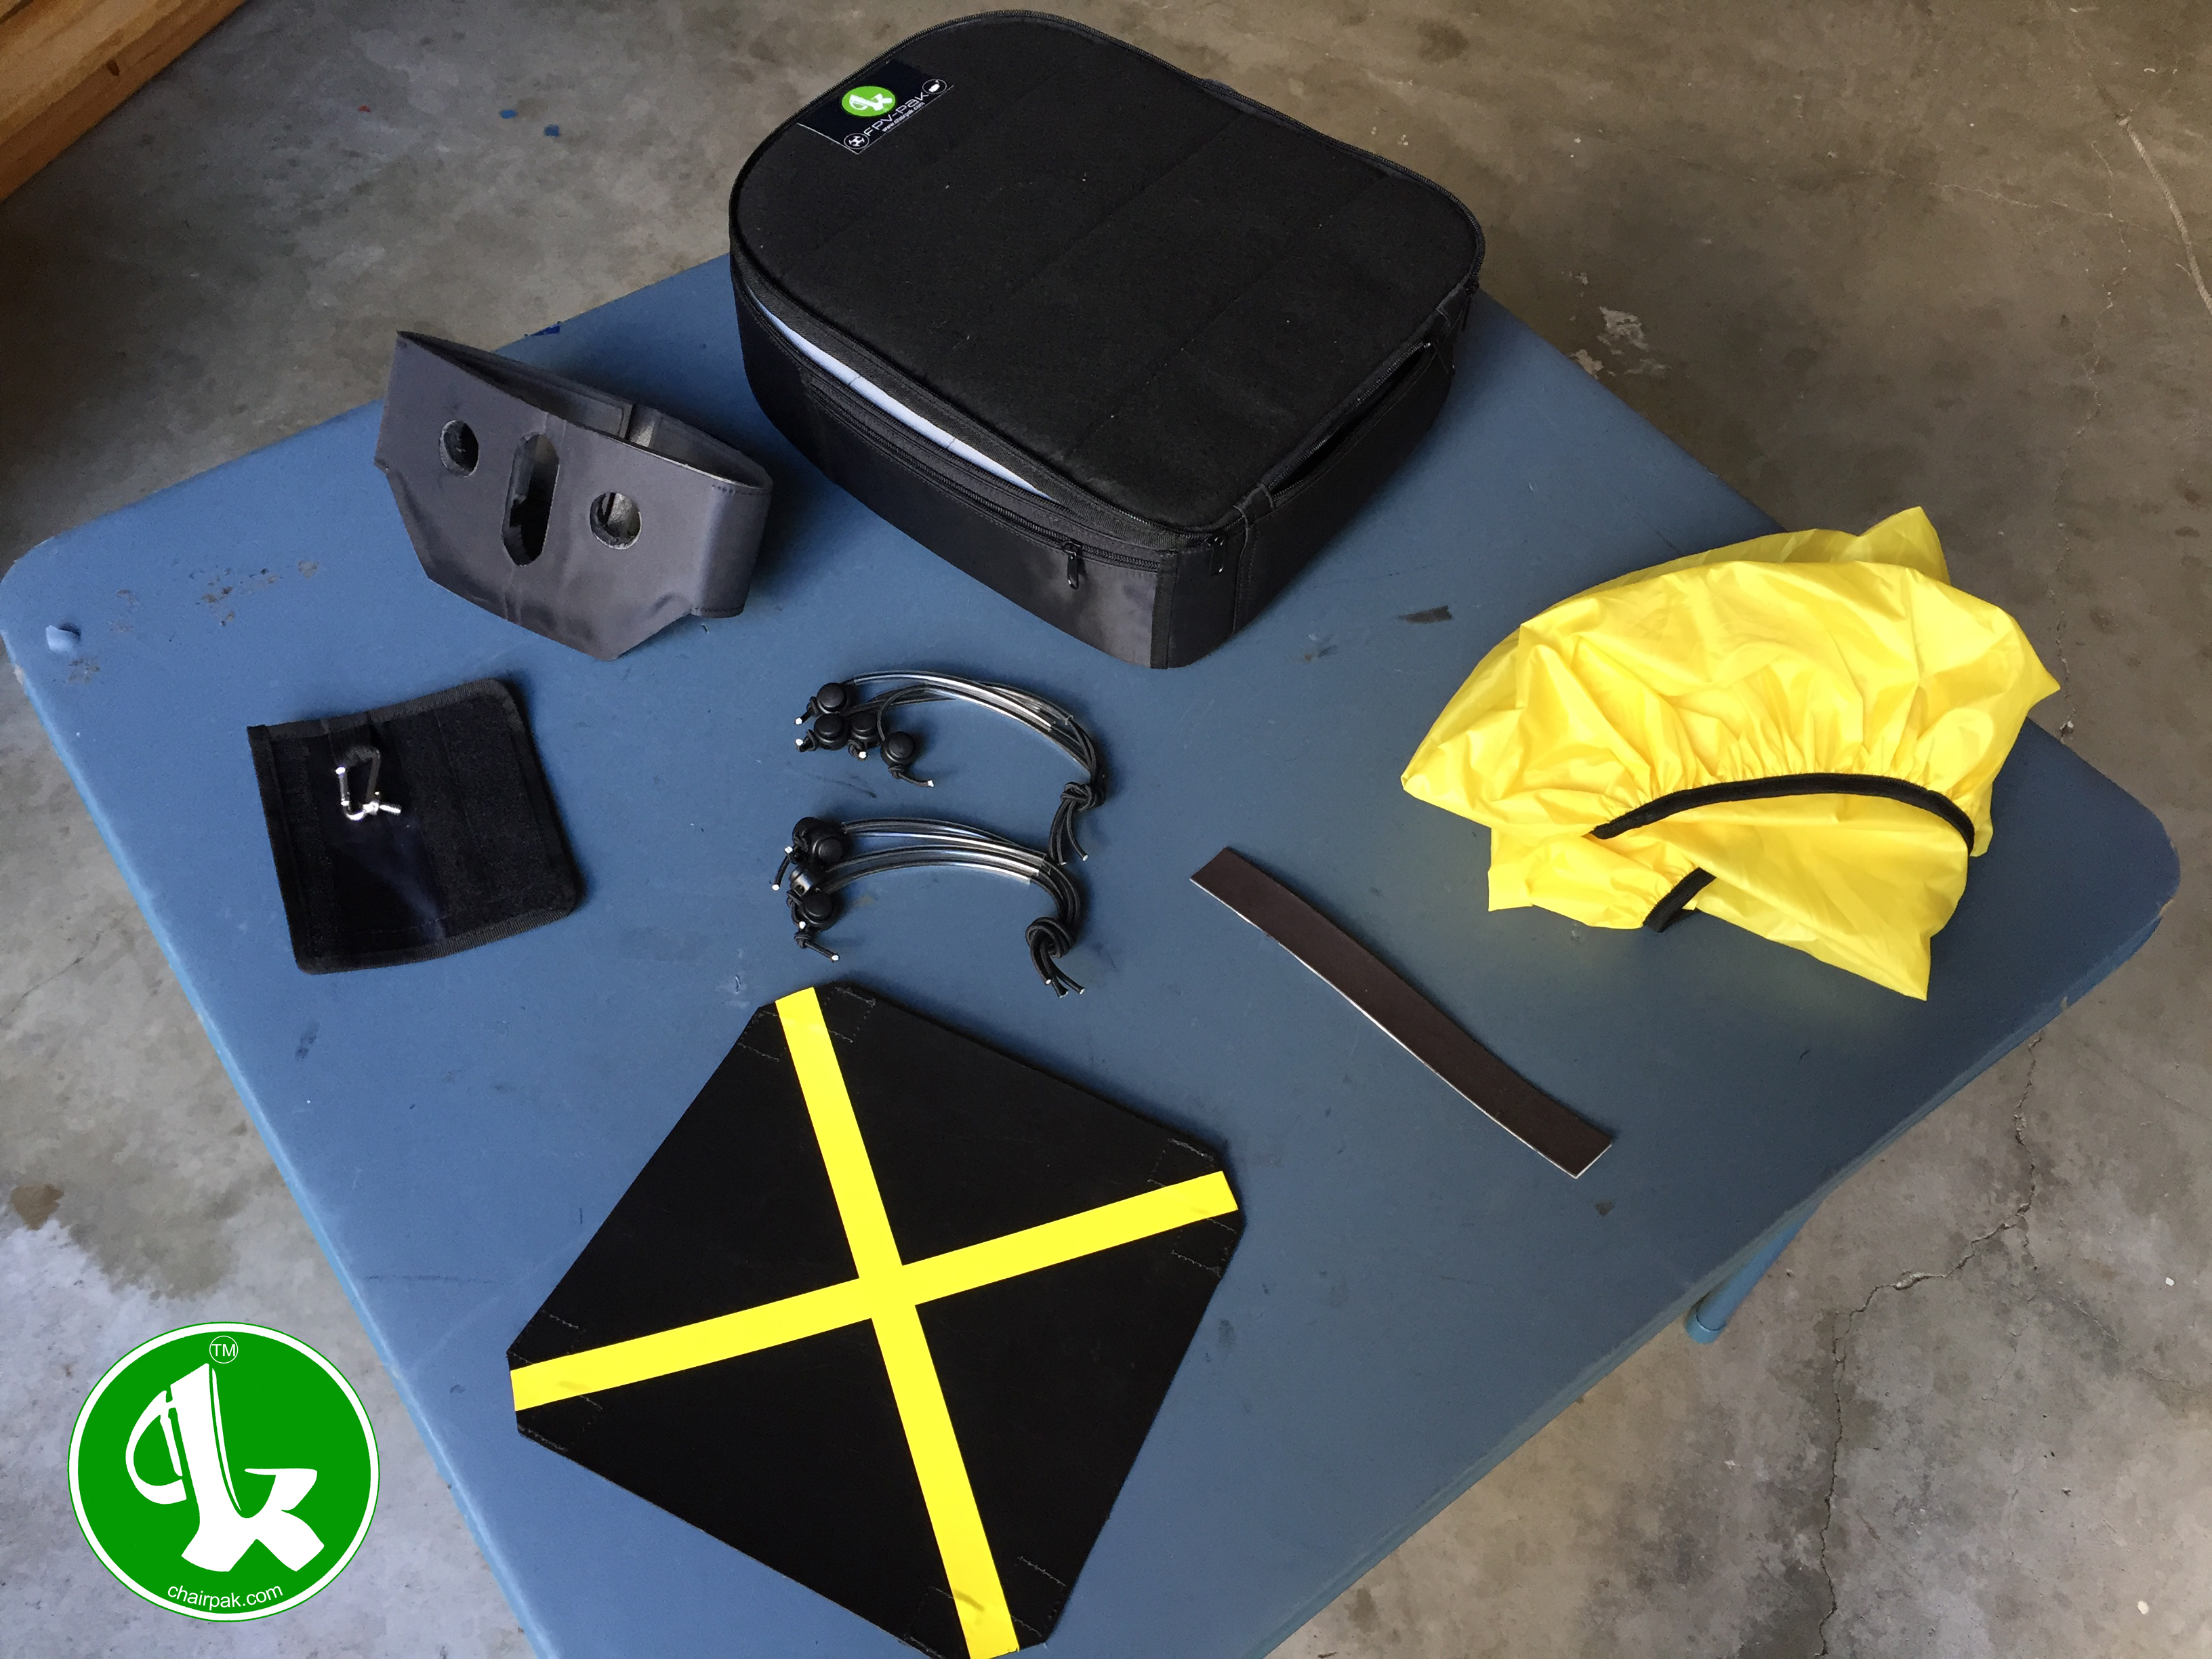 FPV Pak to include: FPV Pak insert, protective radio mask, work table/launch pad, magnet strip, two external bungee attachment systems, waterproof backpack cover Chair-Pak FPV Pak Includes waterproof cover, protective radio mask. magnet strip, worktable/launch pad, external attach bungee system